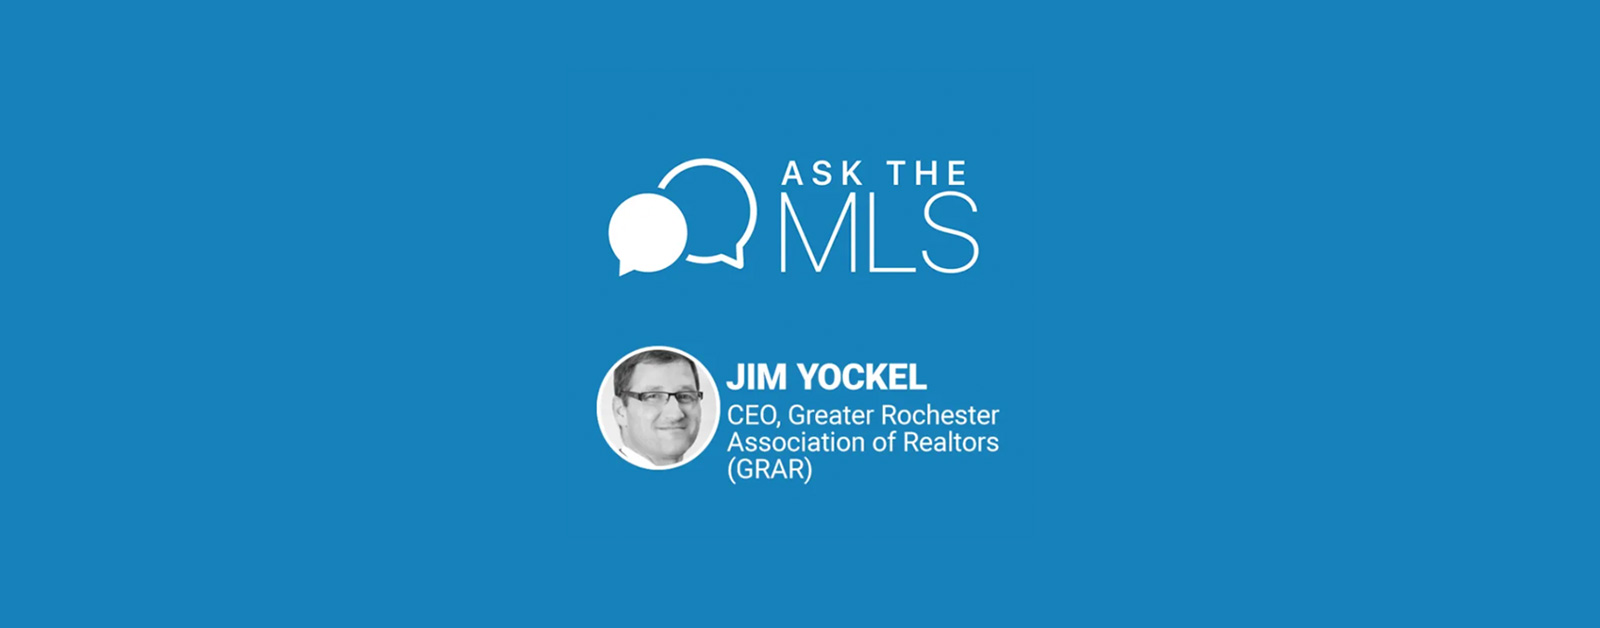 Jim Yockel - Ask the MLS